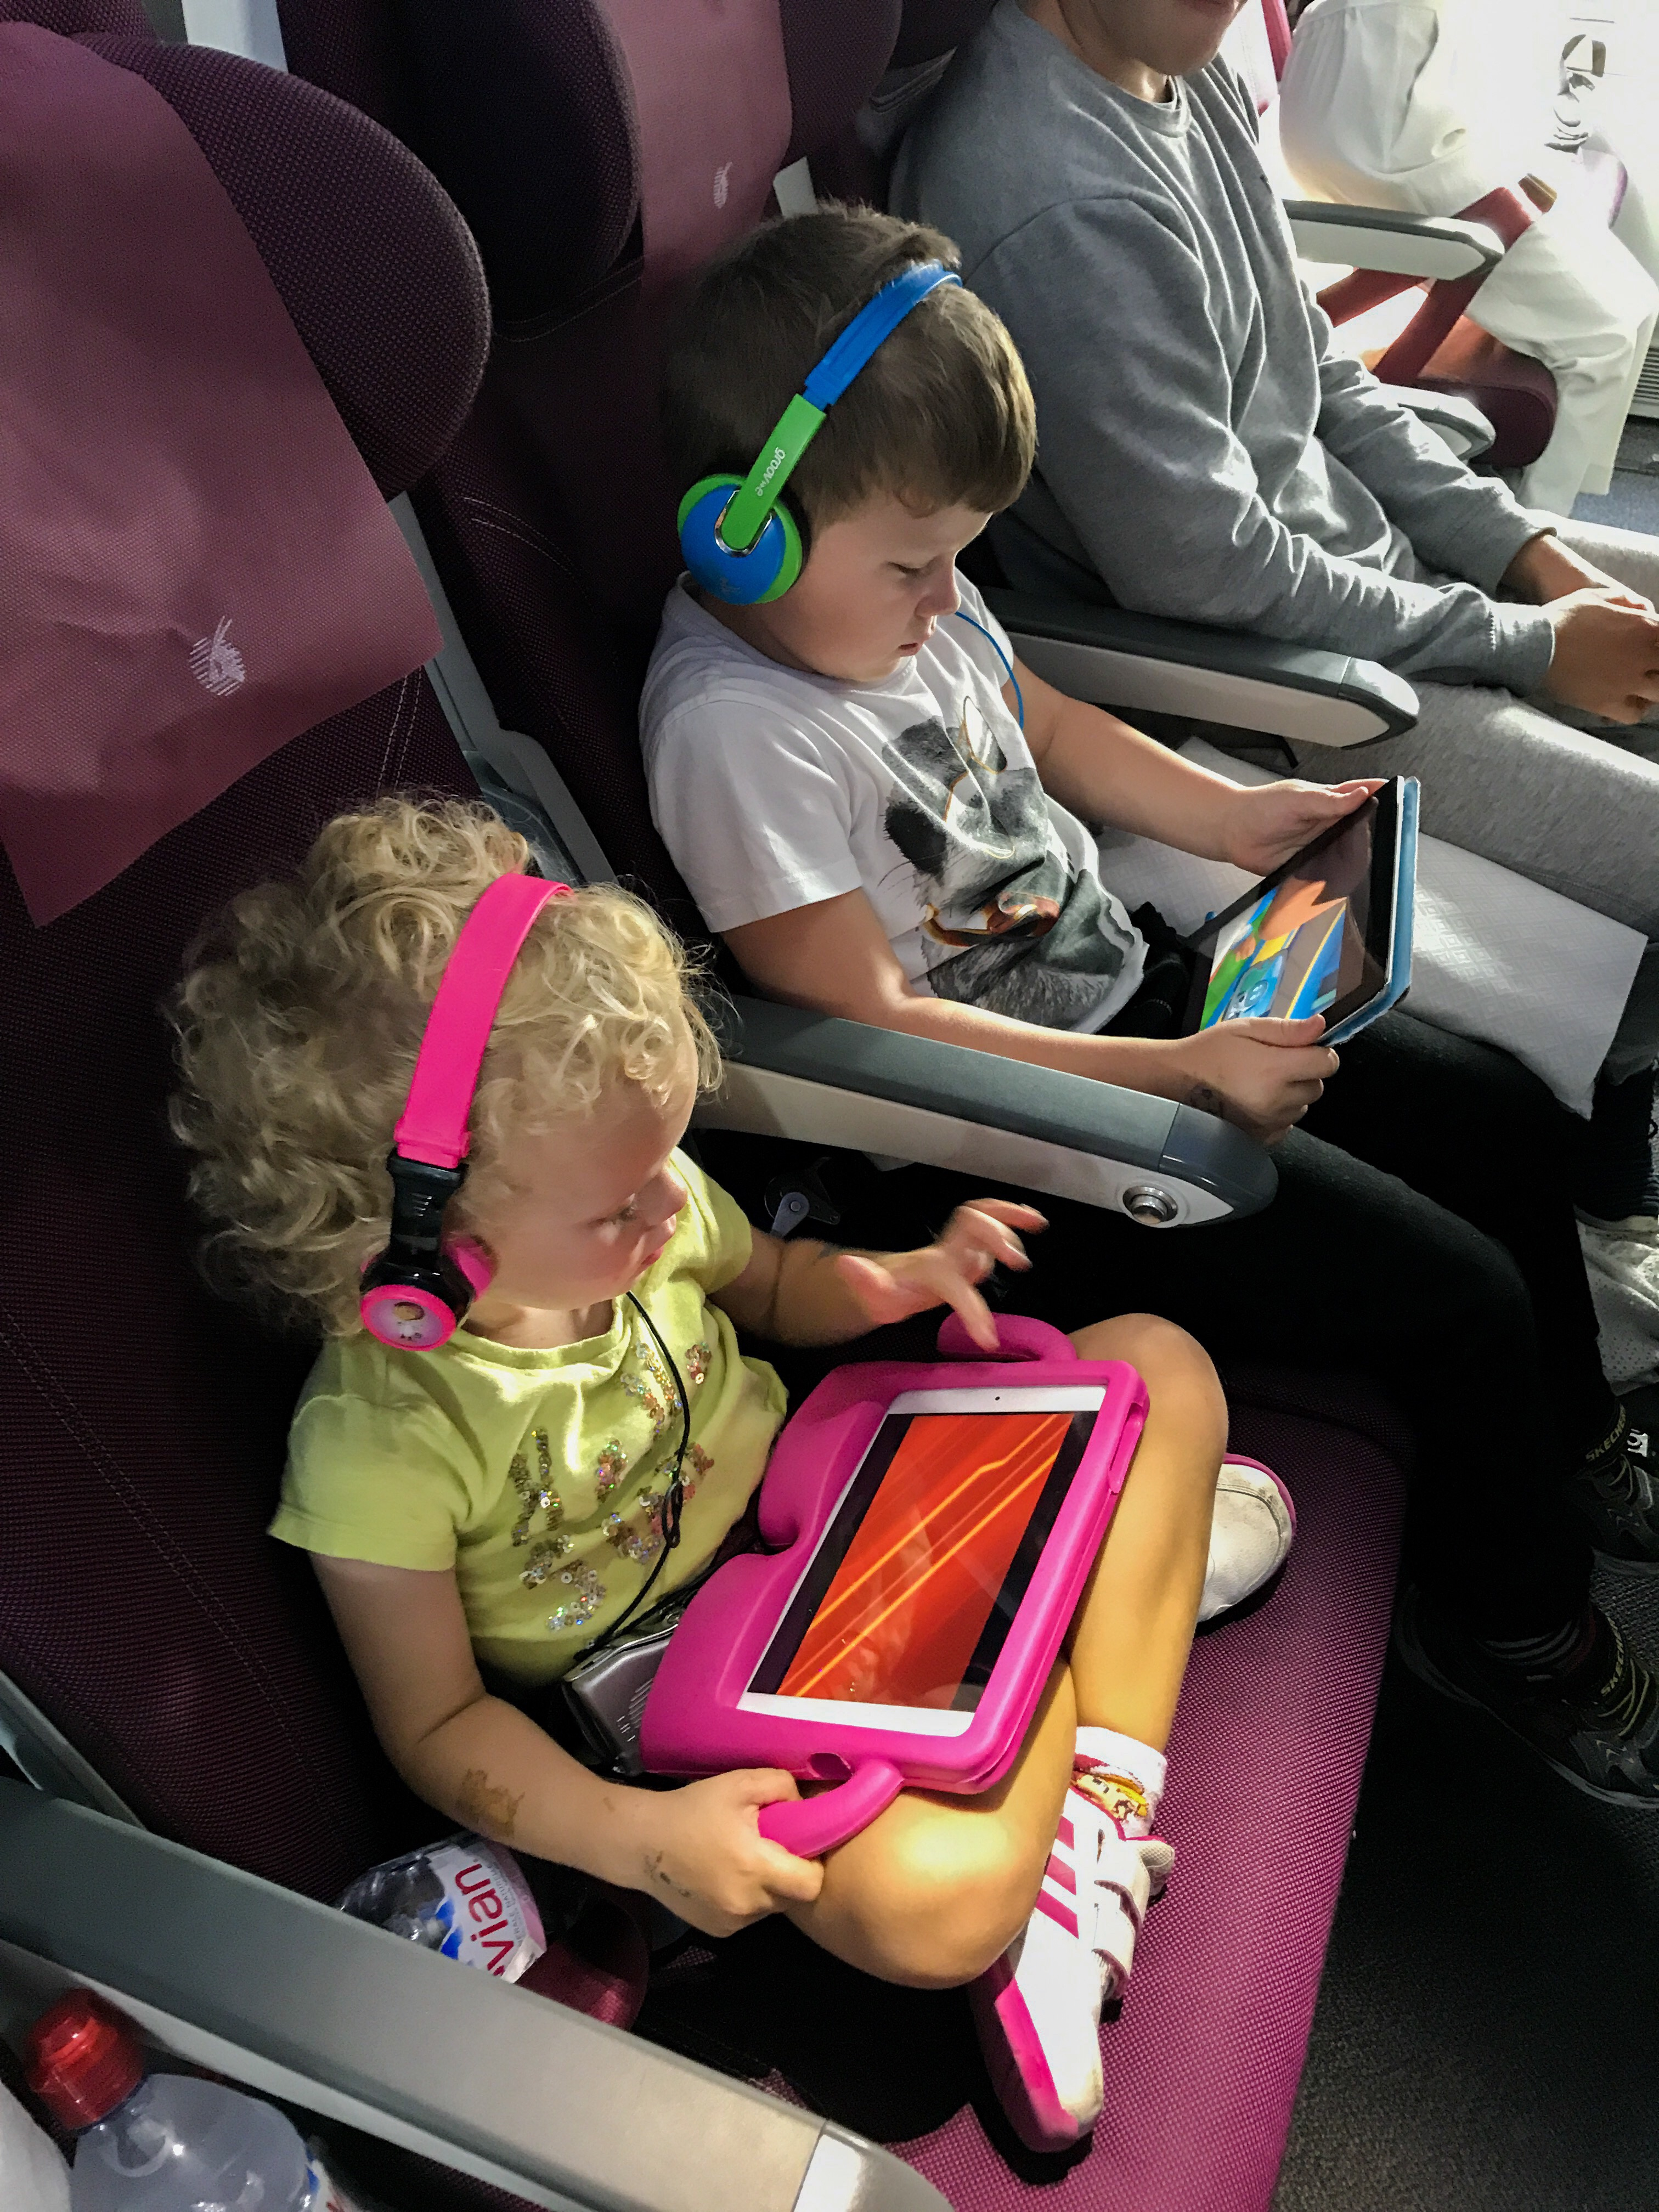 The Things watching iPads on a plane